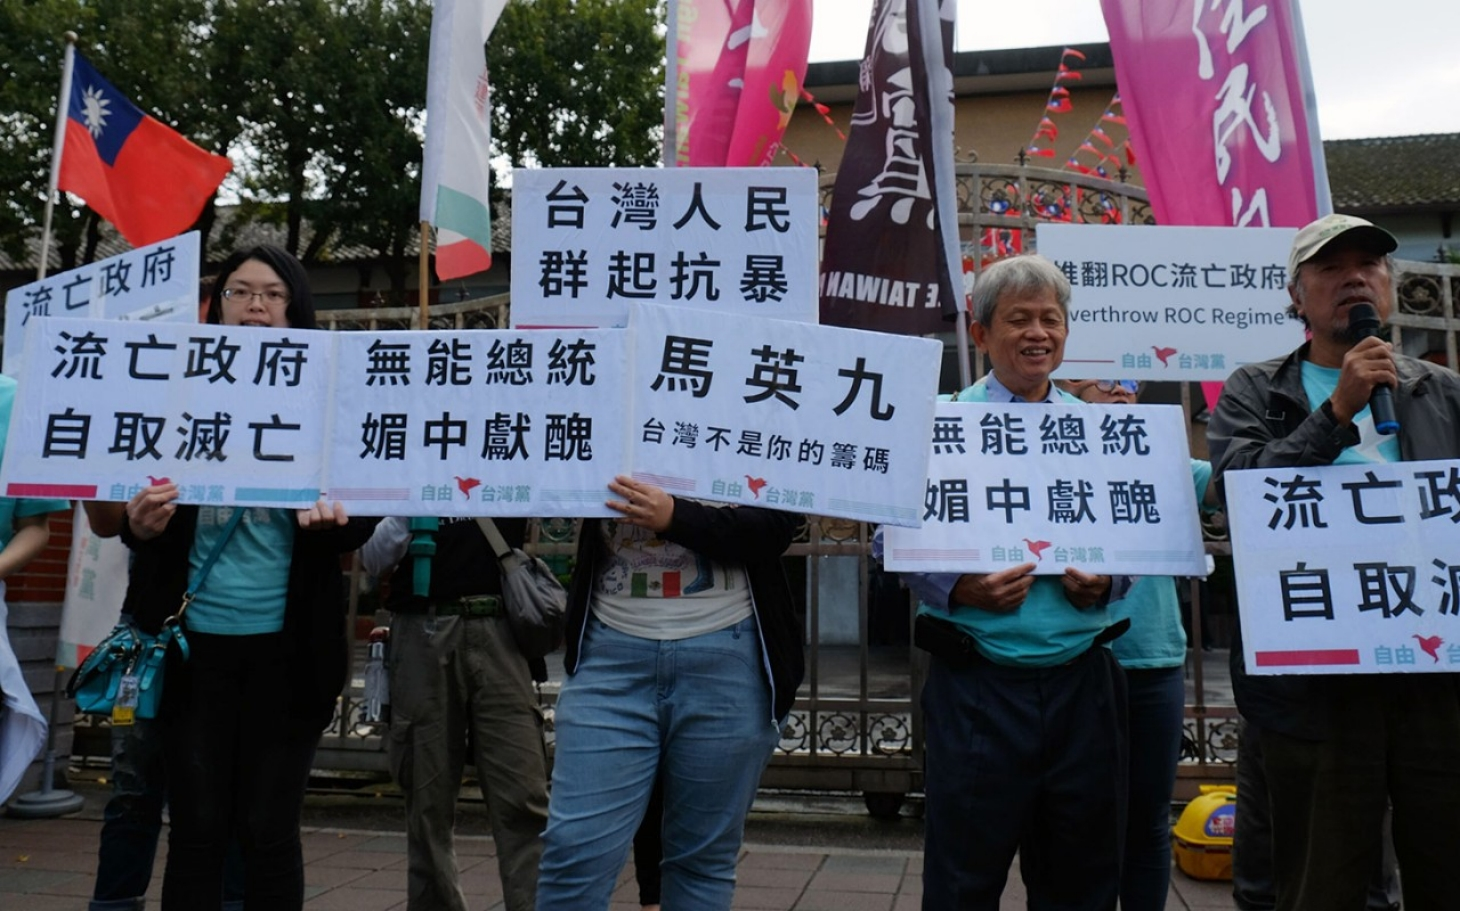 Protests in Taiwan Ahead of Key Meeting With China | Al ...